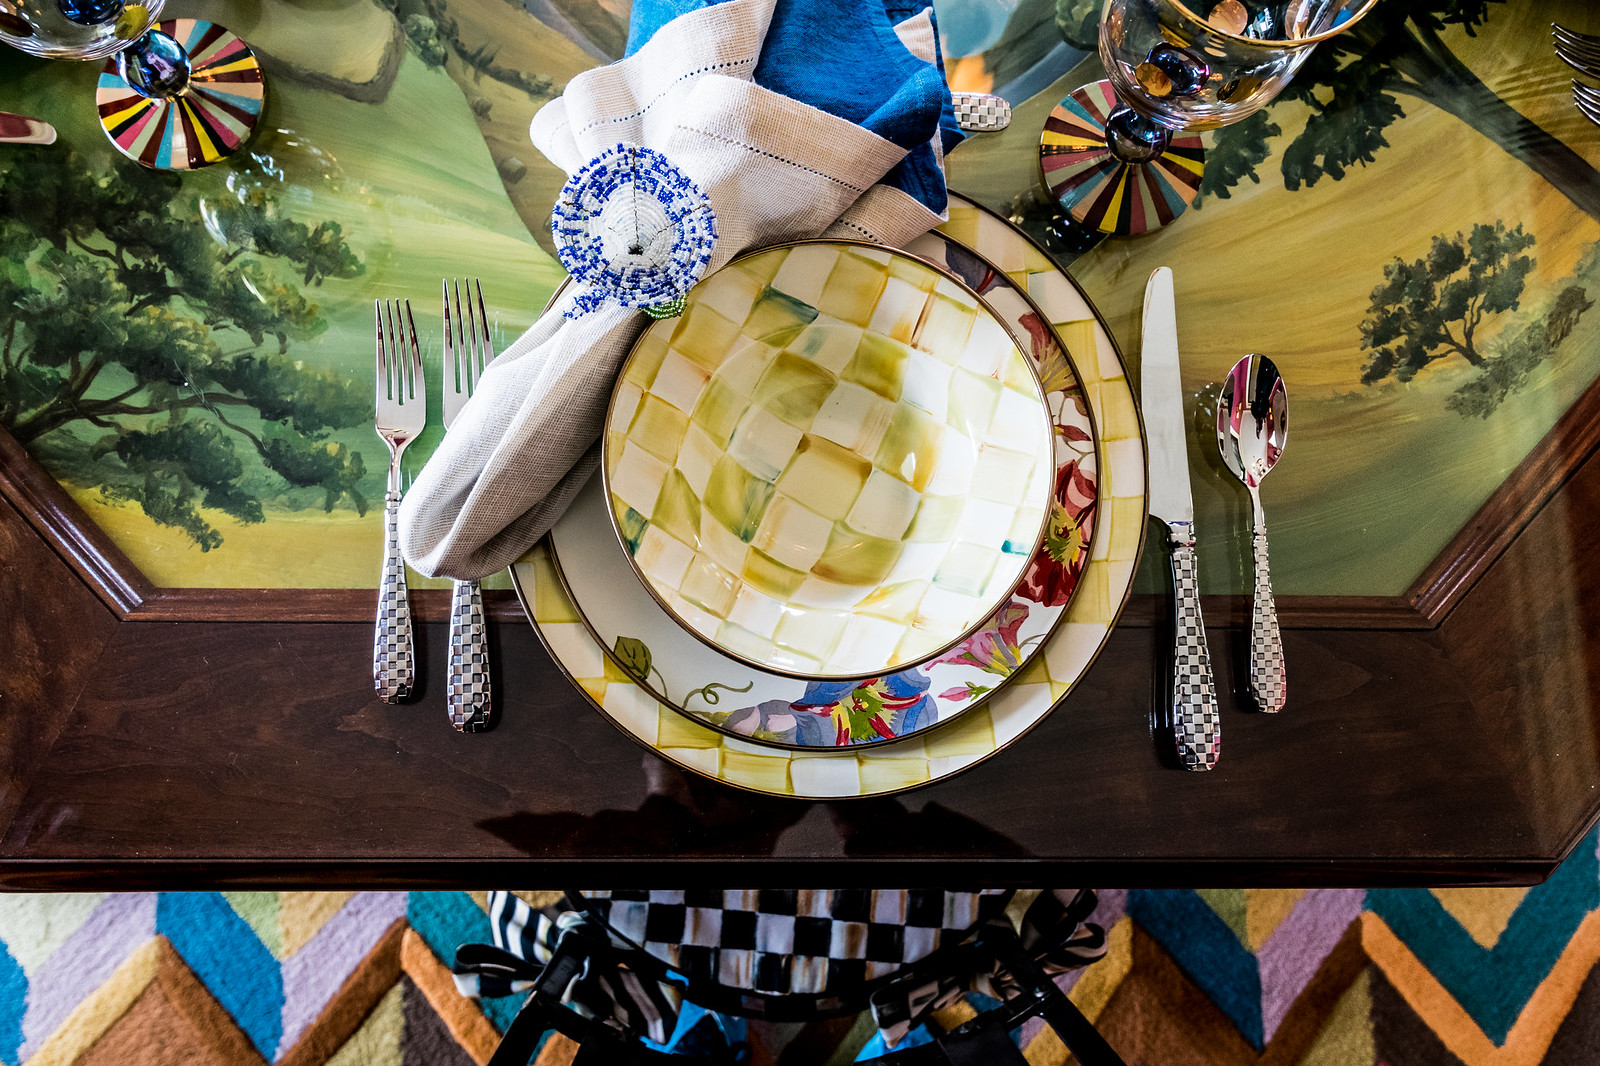 even the table is a hand-painted work of art